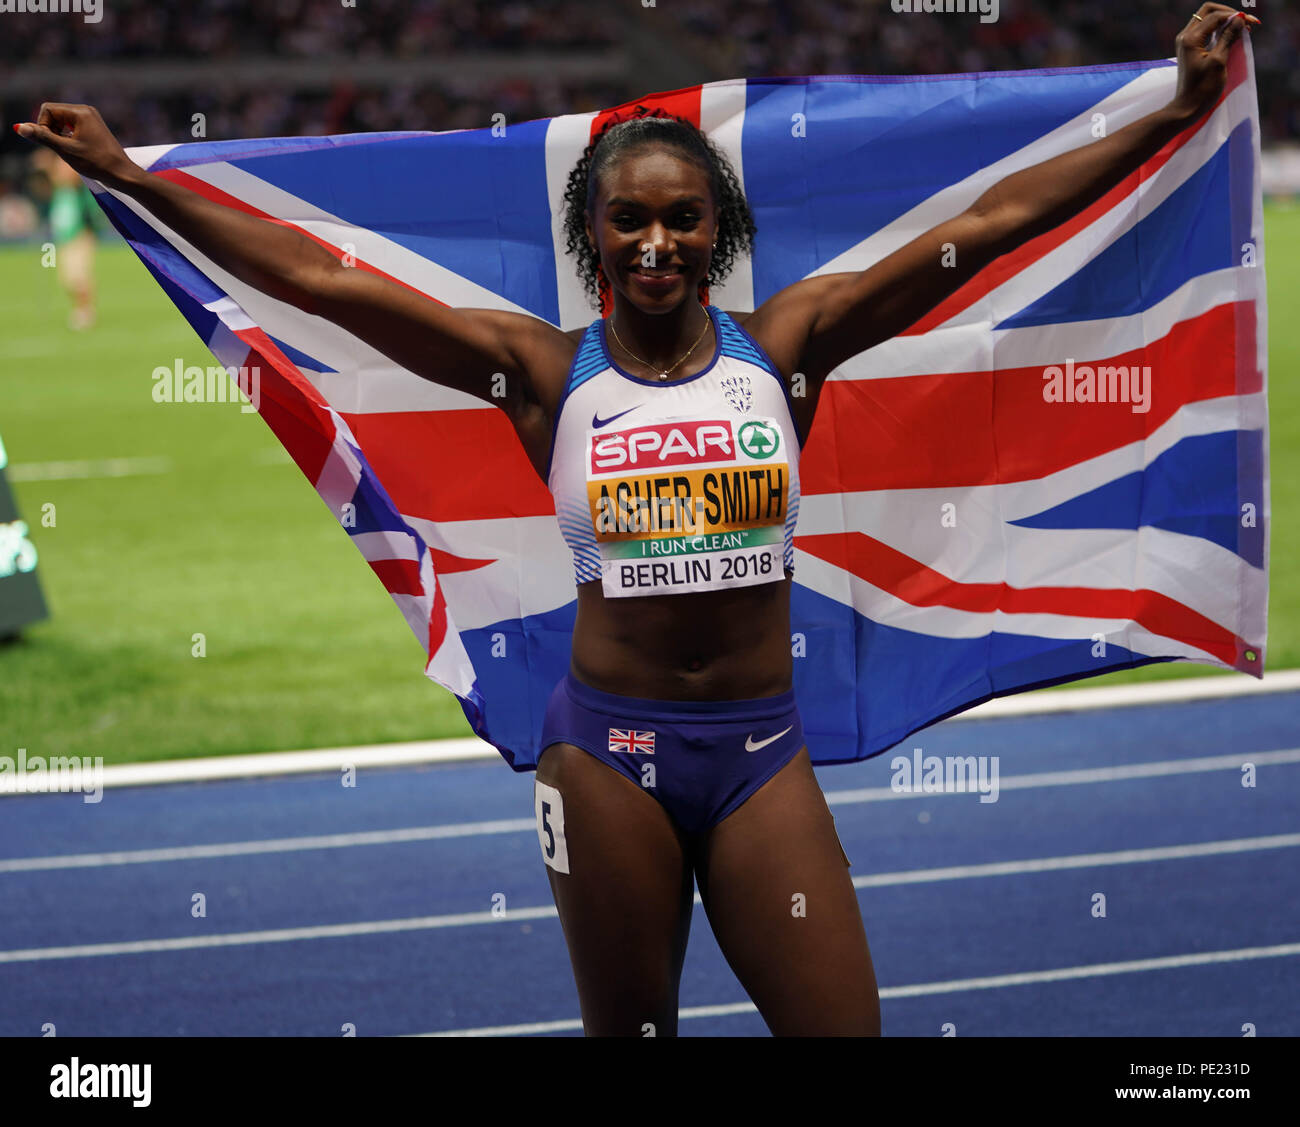 Berlin, Germany, 11 Aug 2018. Dina Asher-Smith (gold) celebrates with the British flag after the Women's 200m on Day 5 of the European Athletics Championships in Berlin, Germany Credit: Ben Booth/Alamy Live News - Stock Image